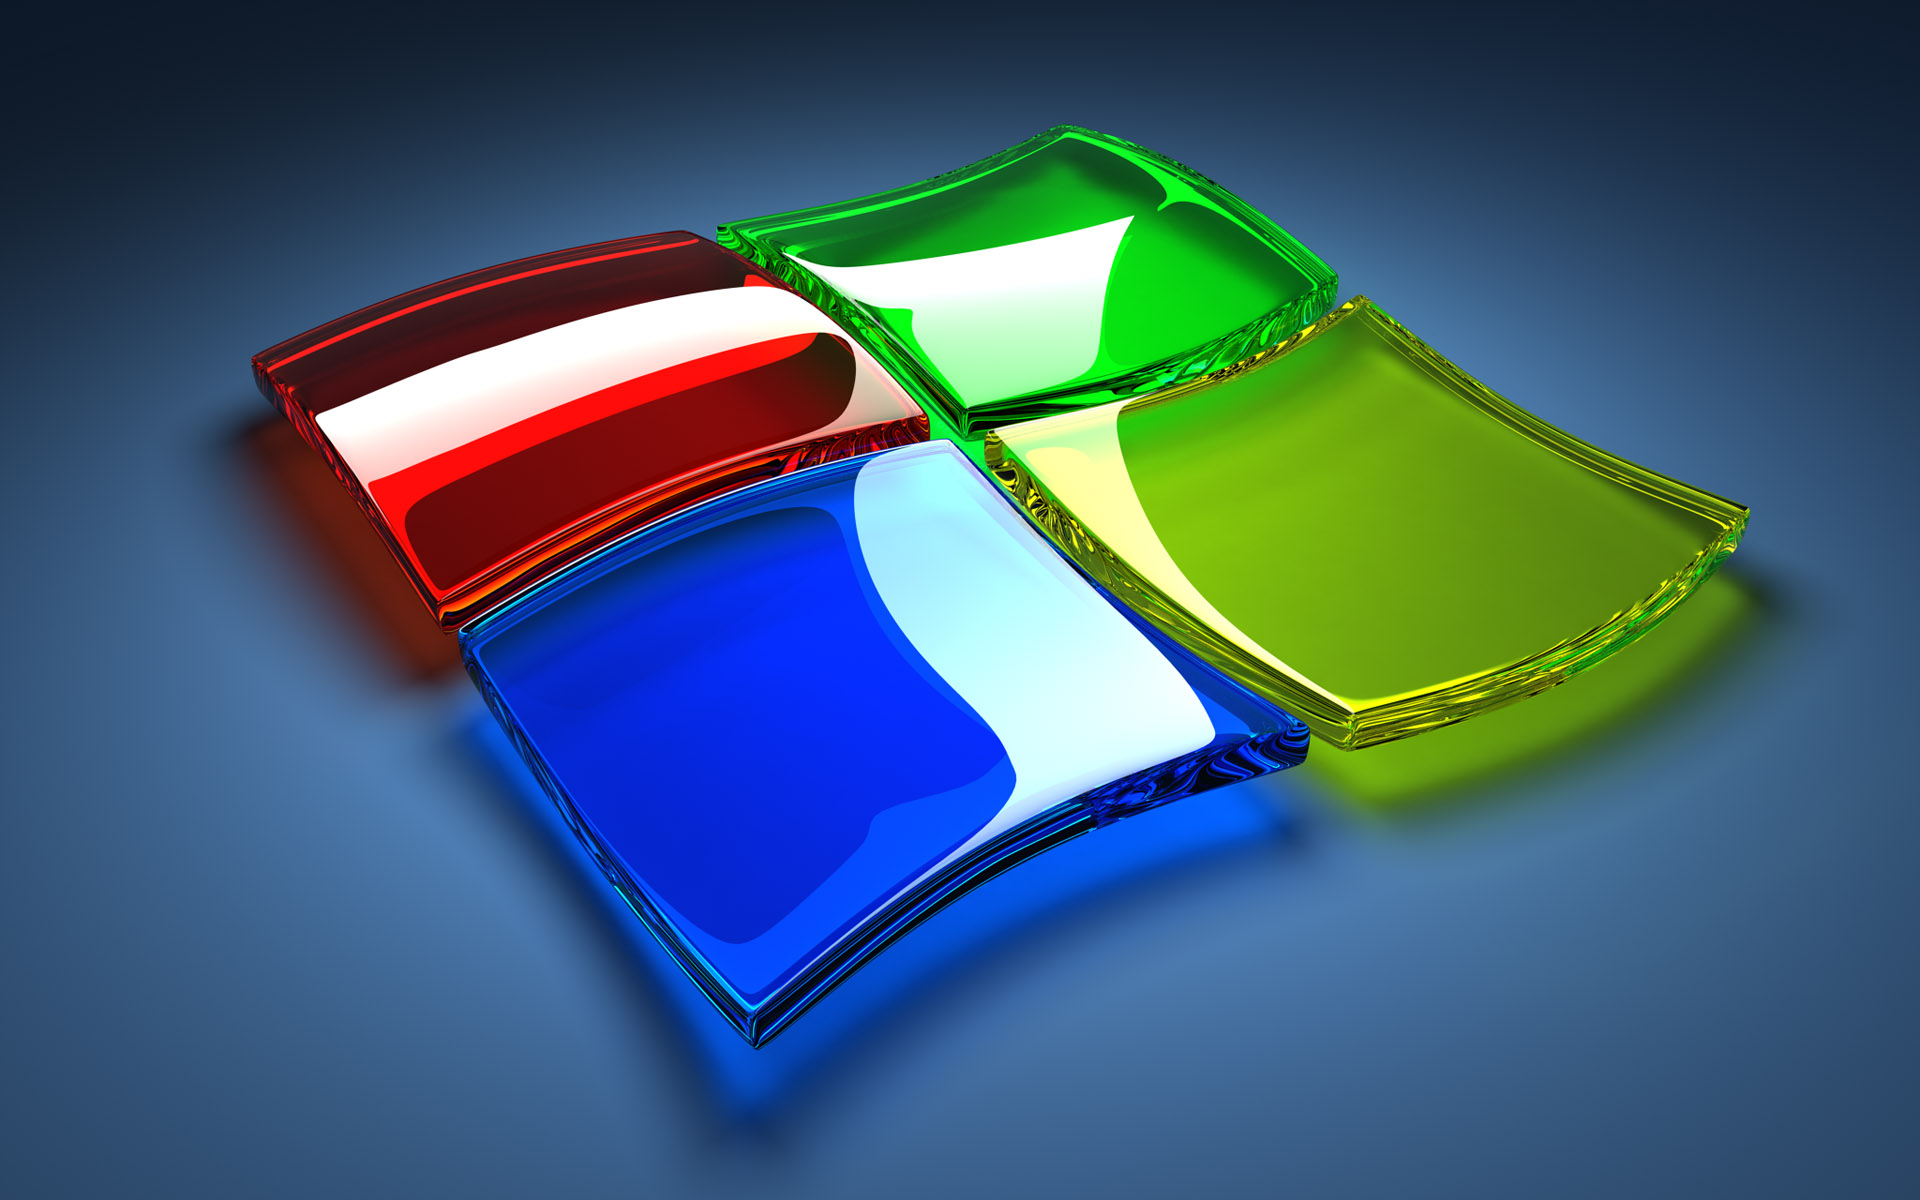 Wallpaper download microsoft - Download Microsoft Windows 8 Wallpapers Pack 2 Wallpapers Techmynd